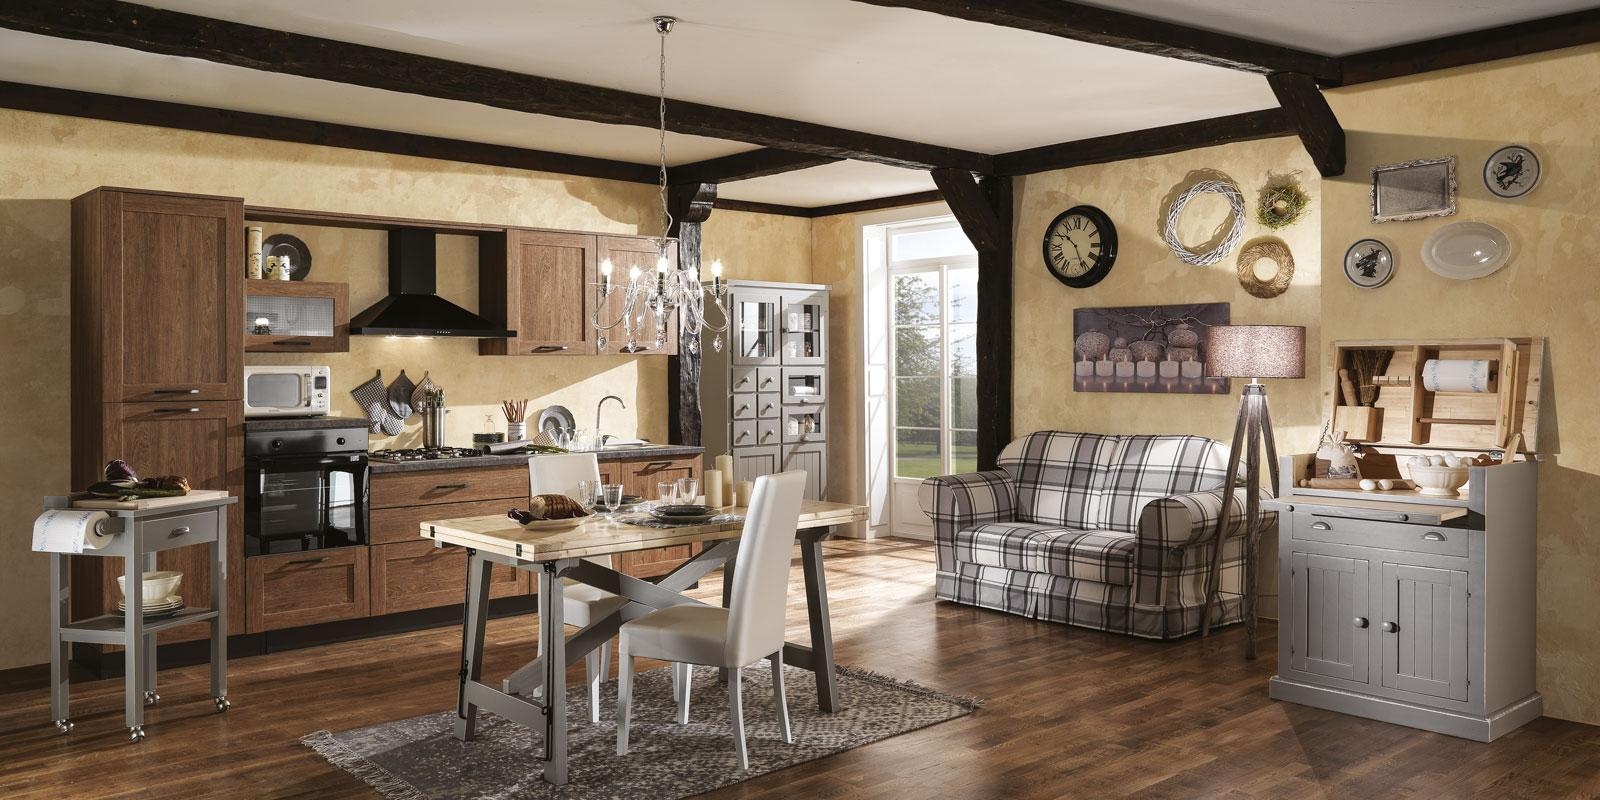 Casa in stile country protagonisti legno e materiali for Bonprix arredamento